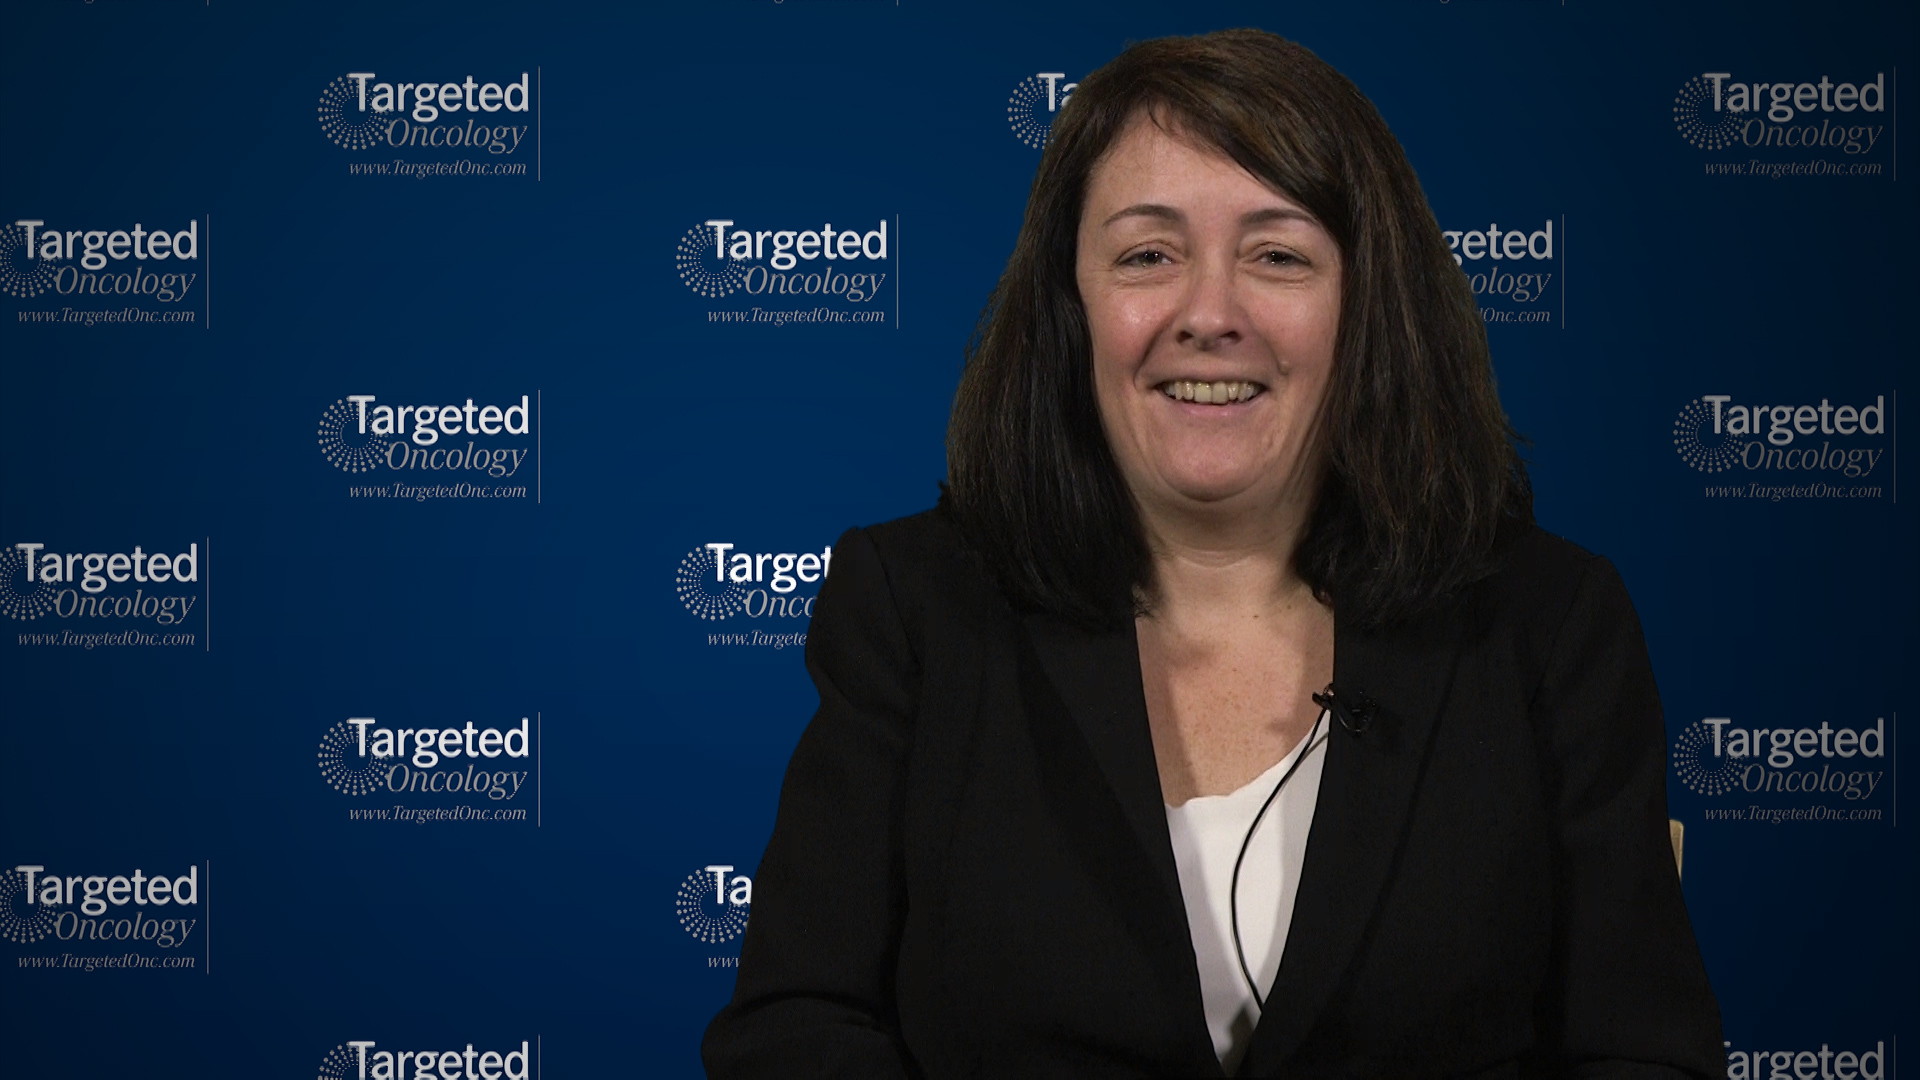 Safety and Efficacy of Pertuzumab in HER2+ Breast Cancer